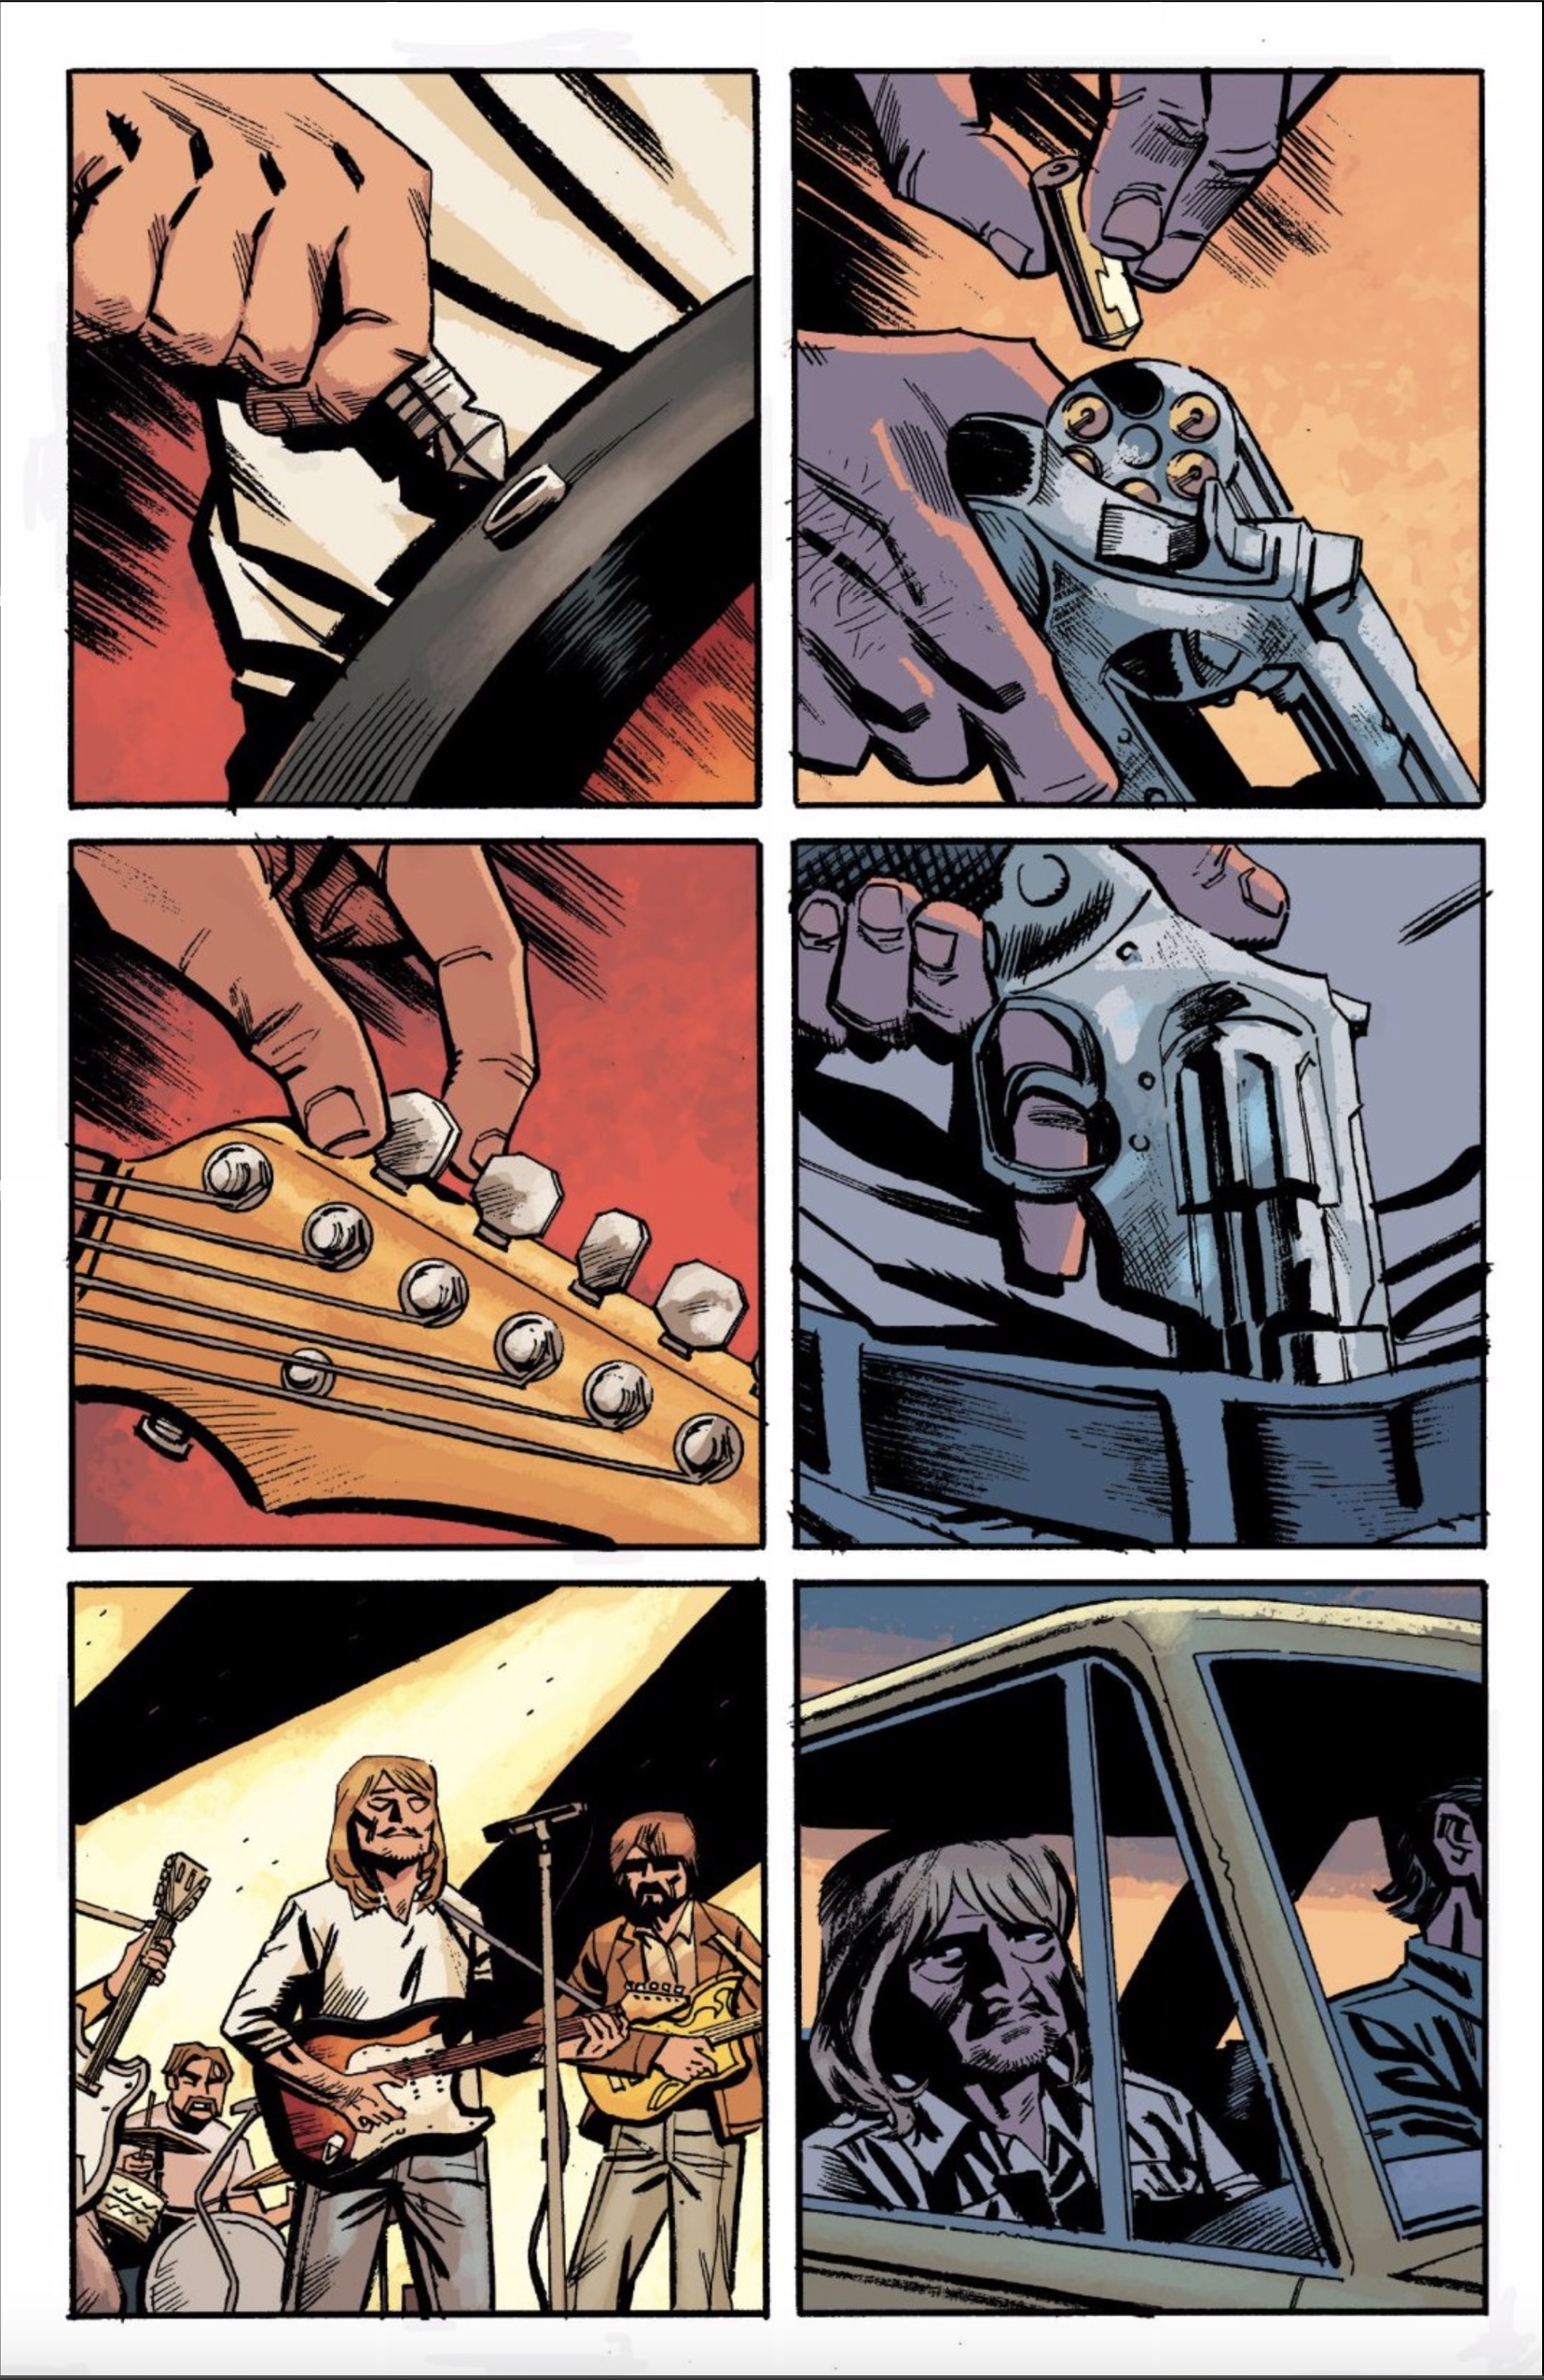 Silent page 51 of Killer Groove.  Jonny setting up his guitar on stage is paralleling with him loading a gun for a murder.